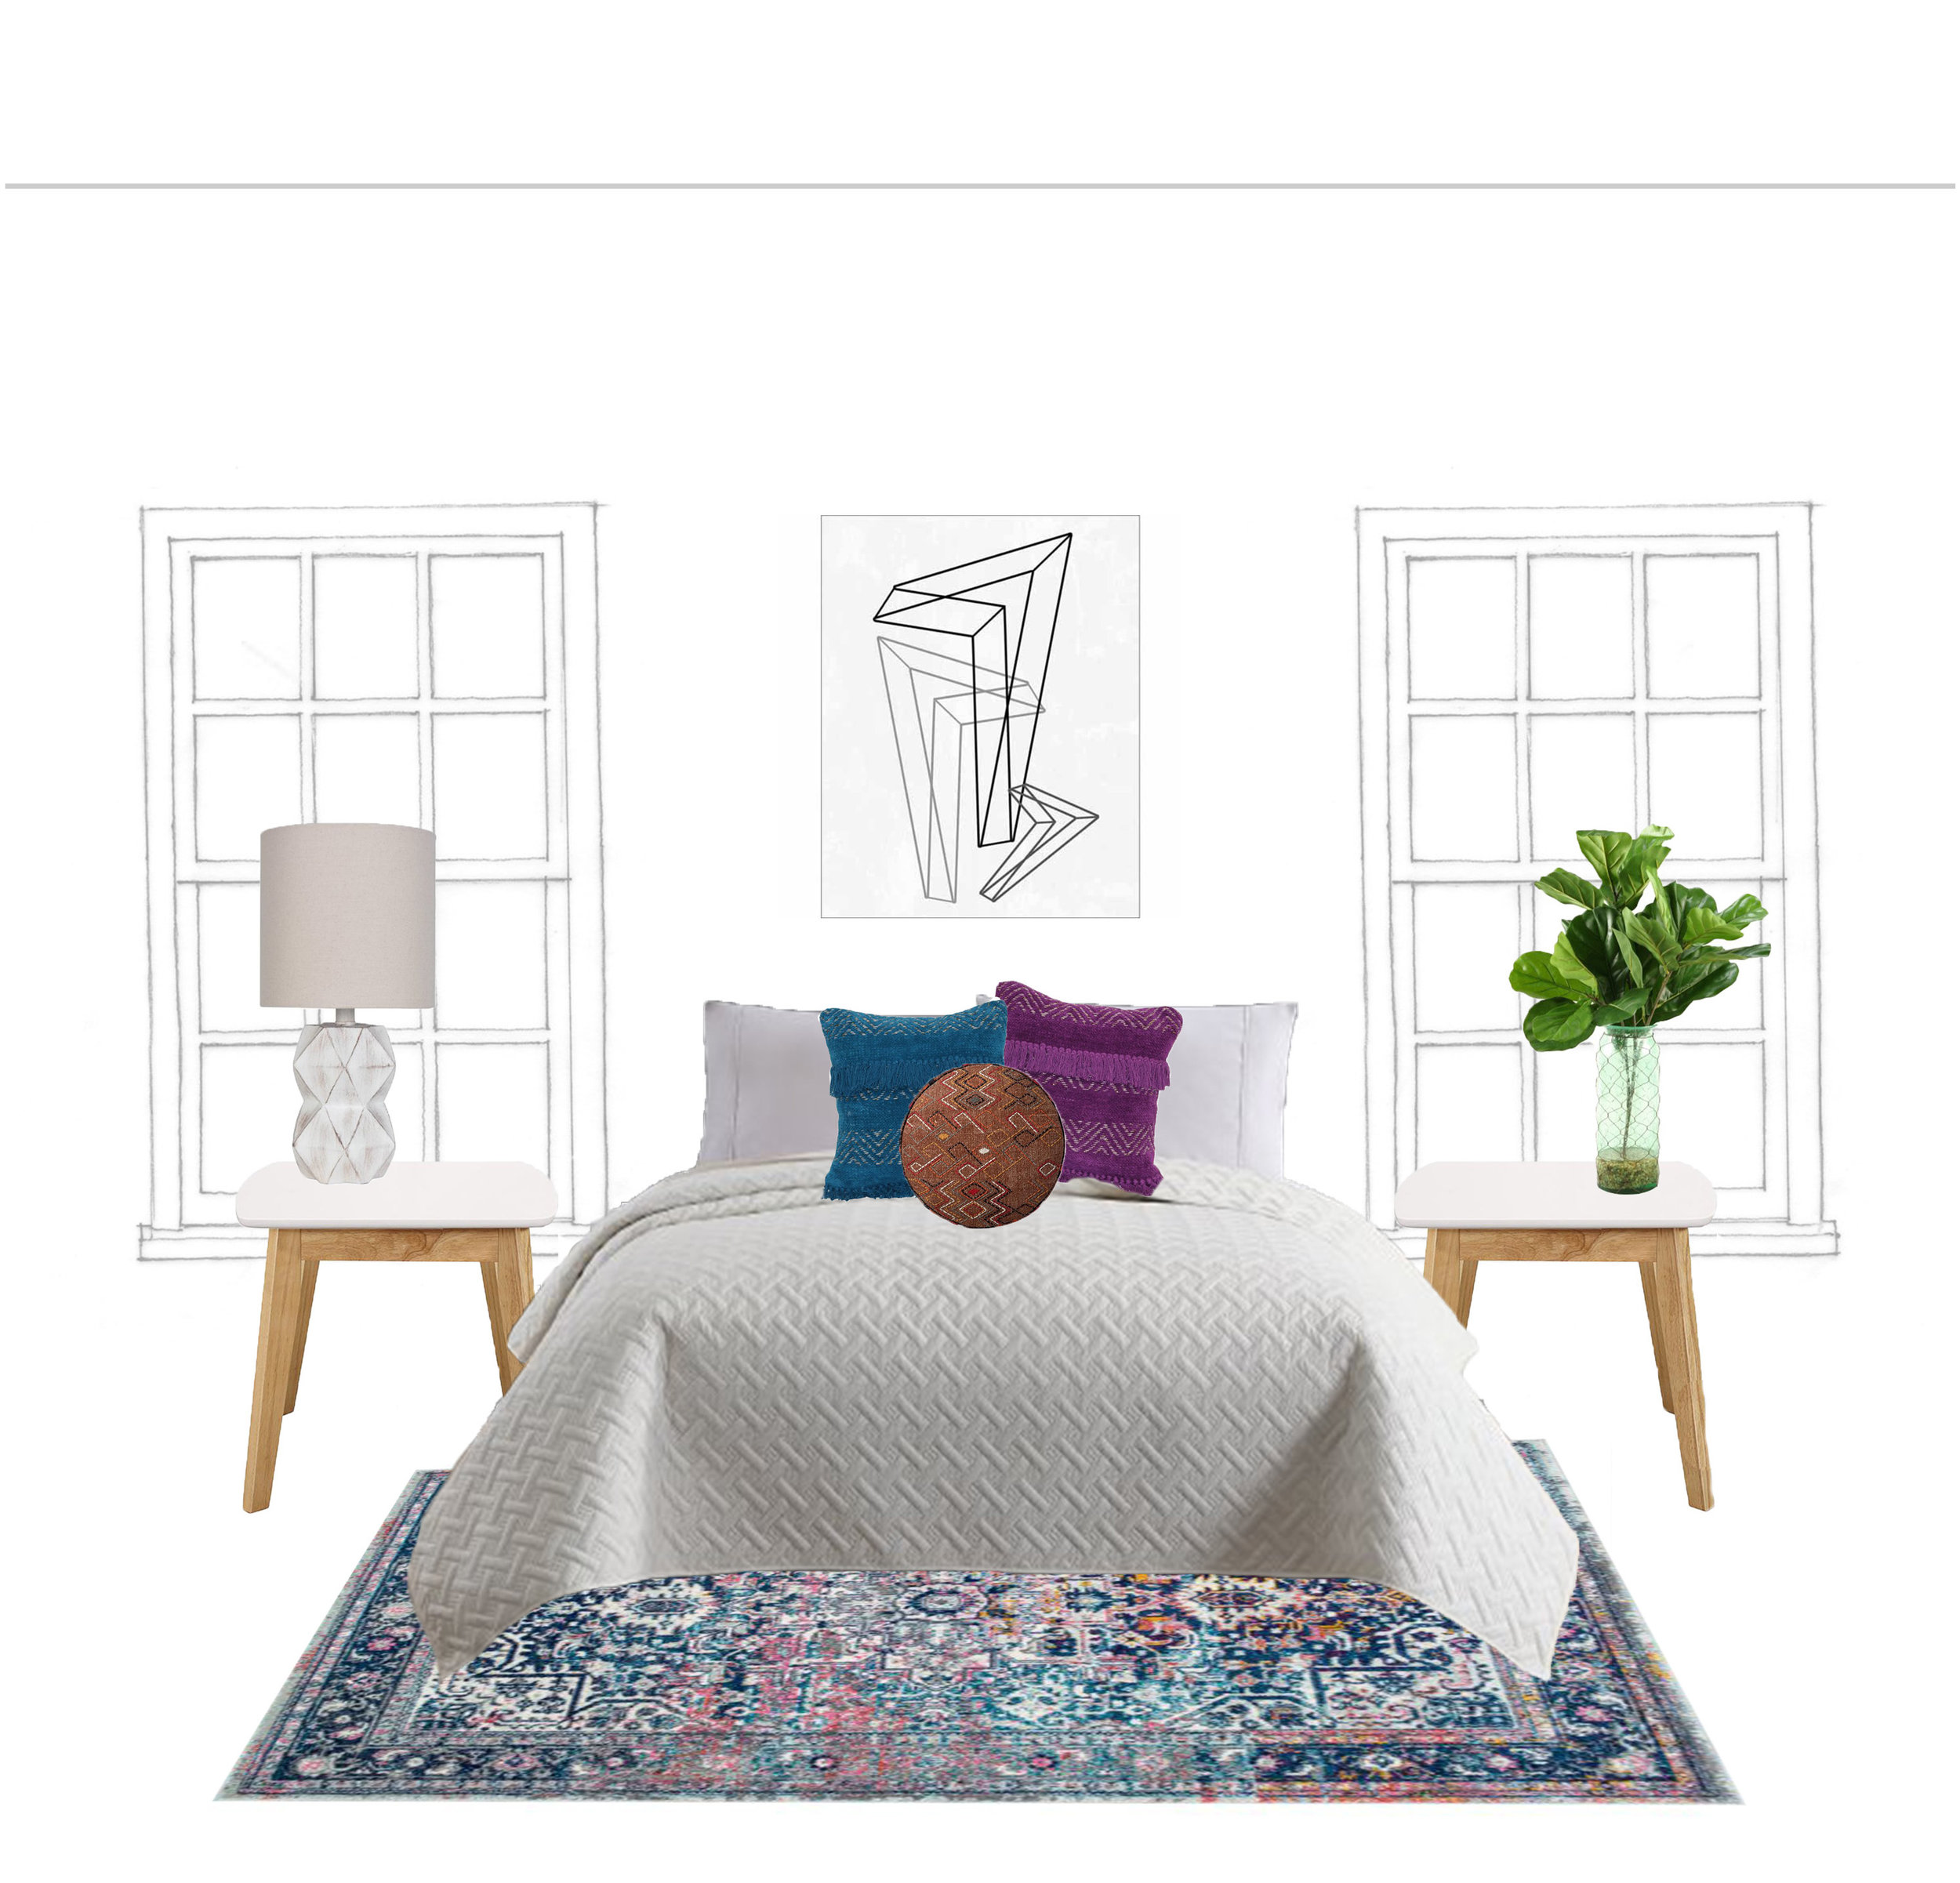 tables-accents-rug.jpg